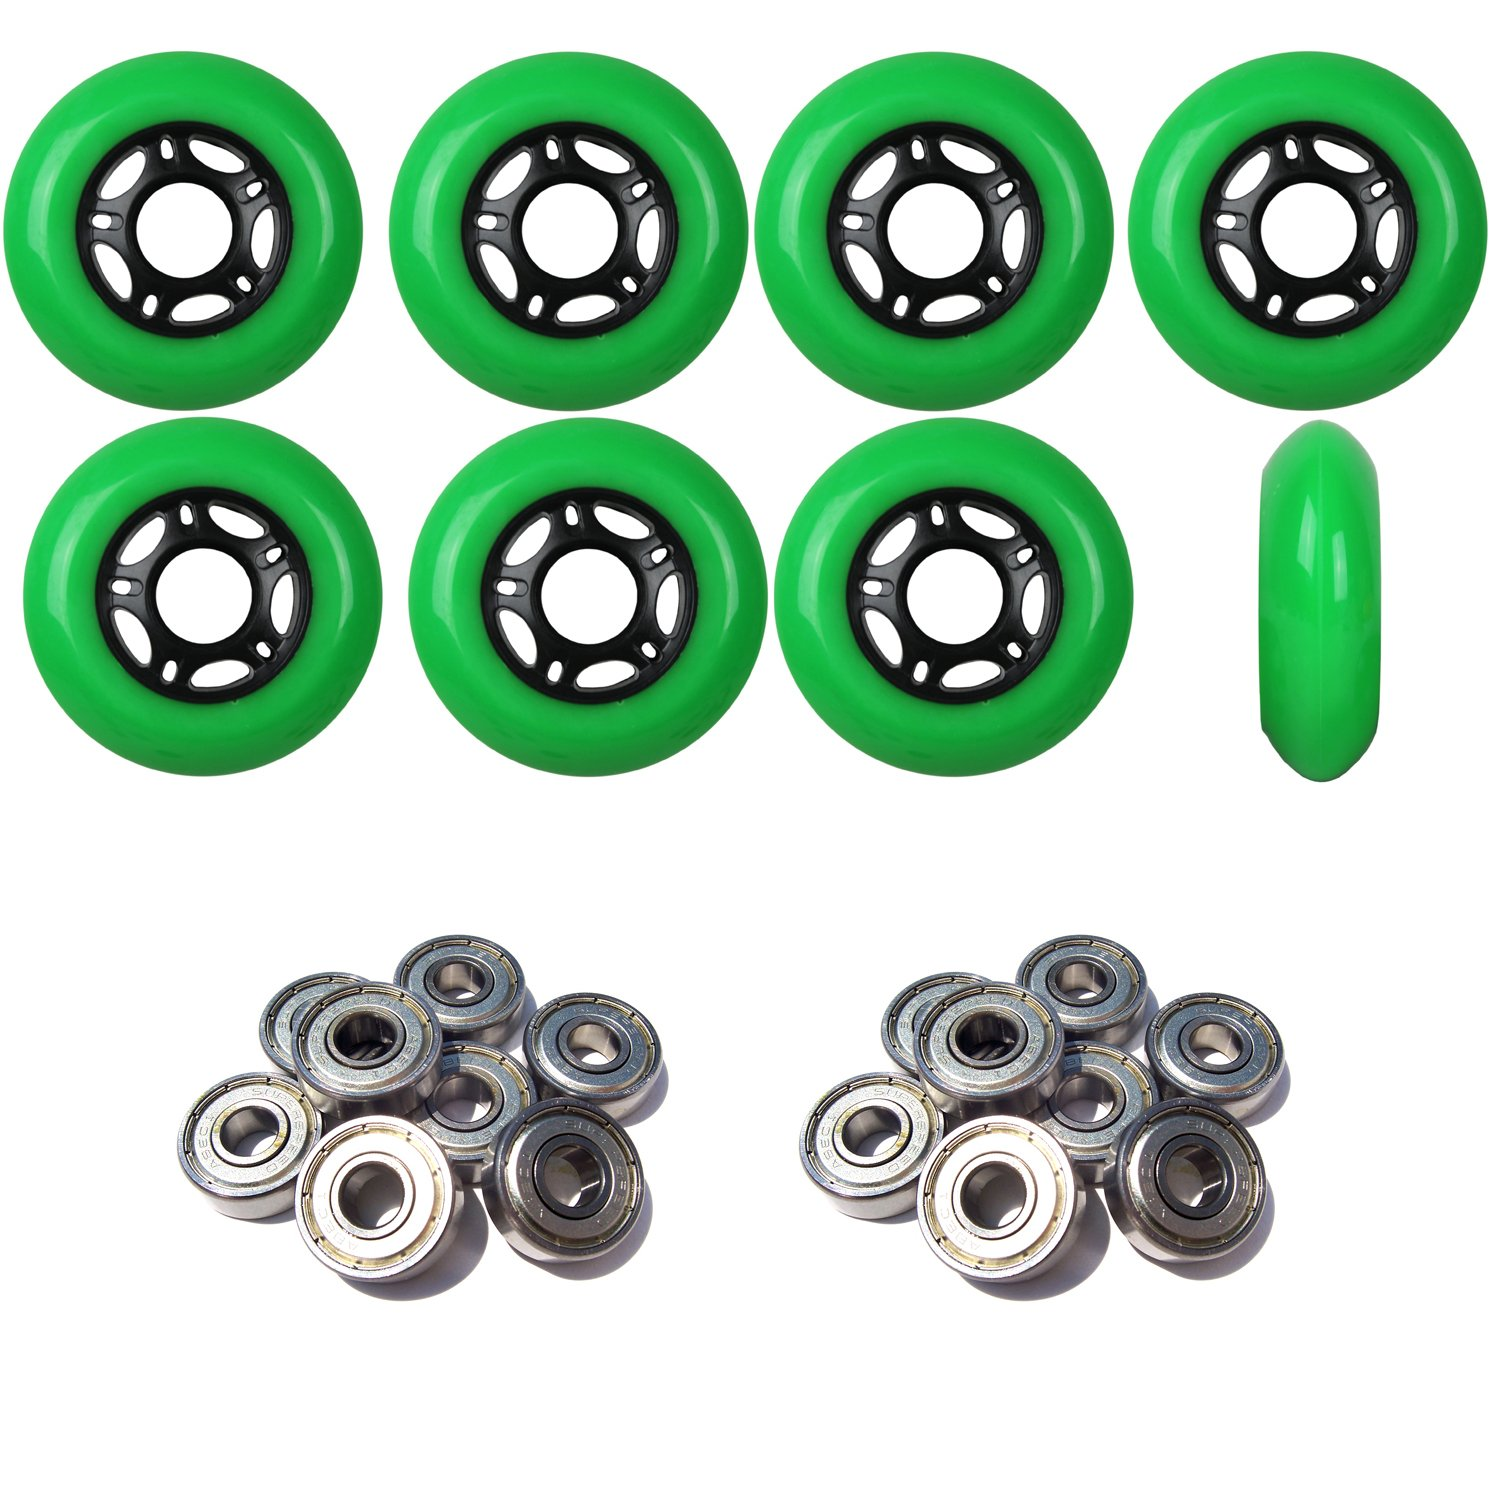 Player's Choice OUTDOOR Inline Skate Wheels 76MM 89a GREEN x8 W/ABEC 9 BEARINGS